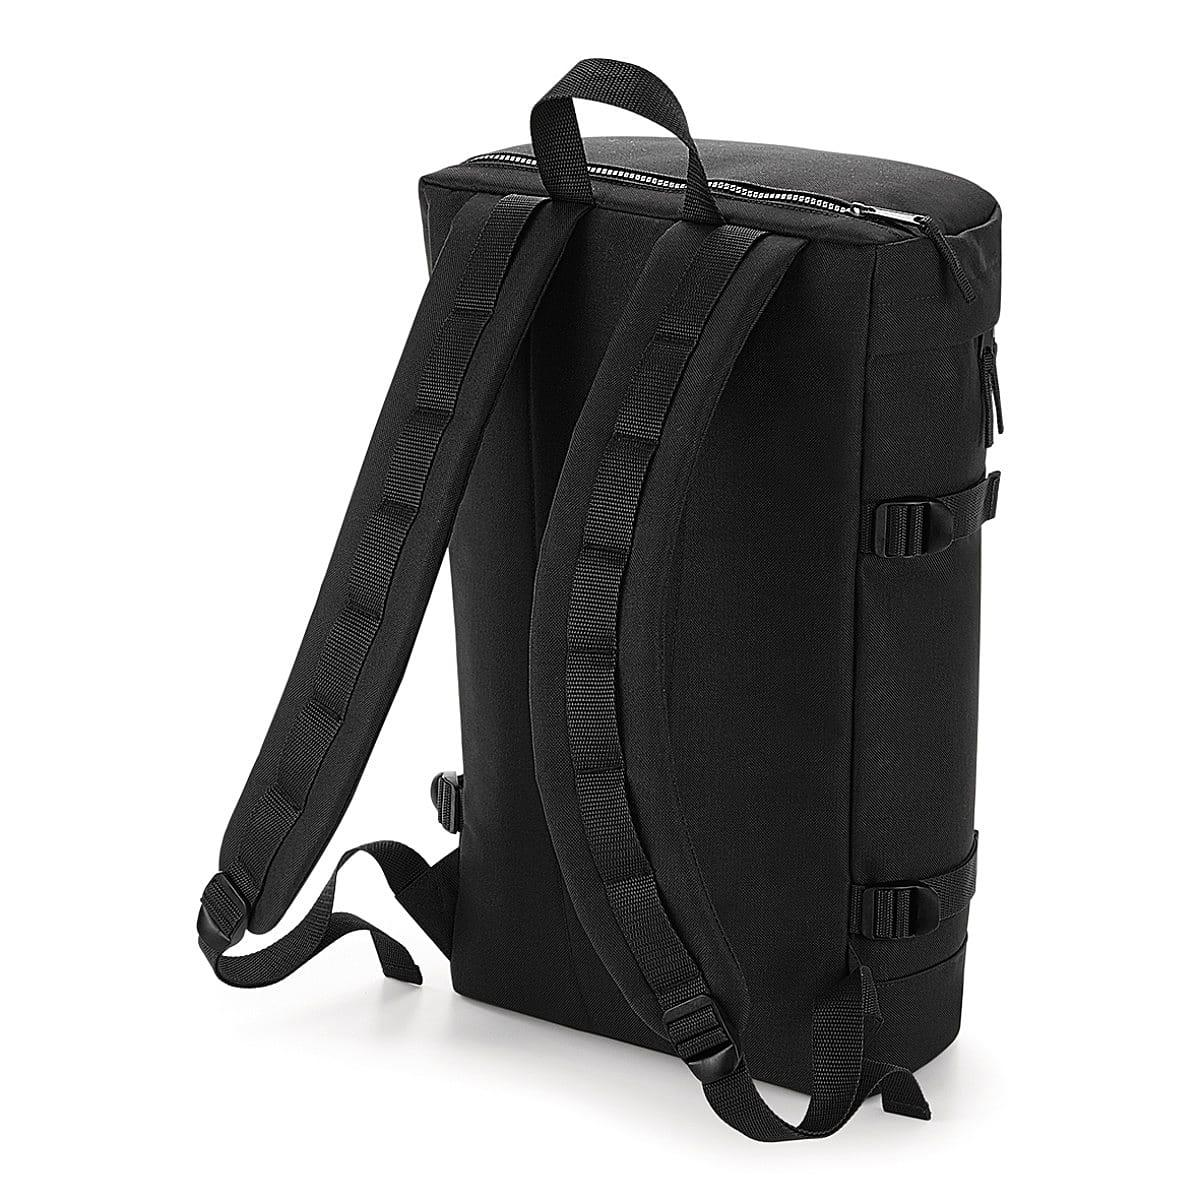 Bagbase Molle Utility Backpack in Black (Product Code: BG845)